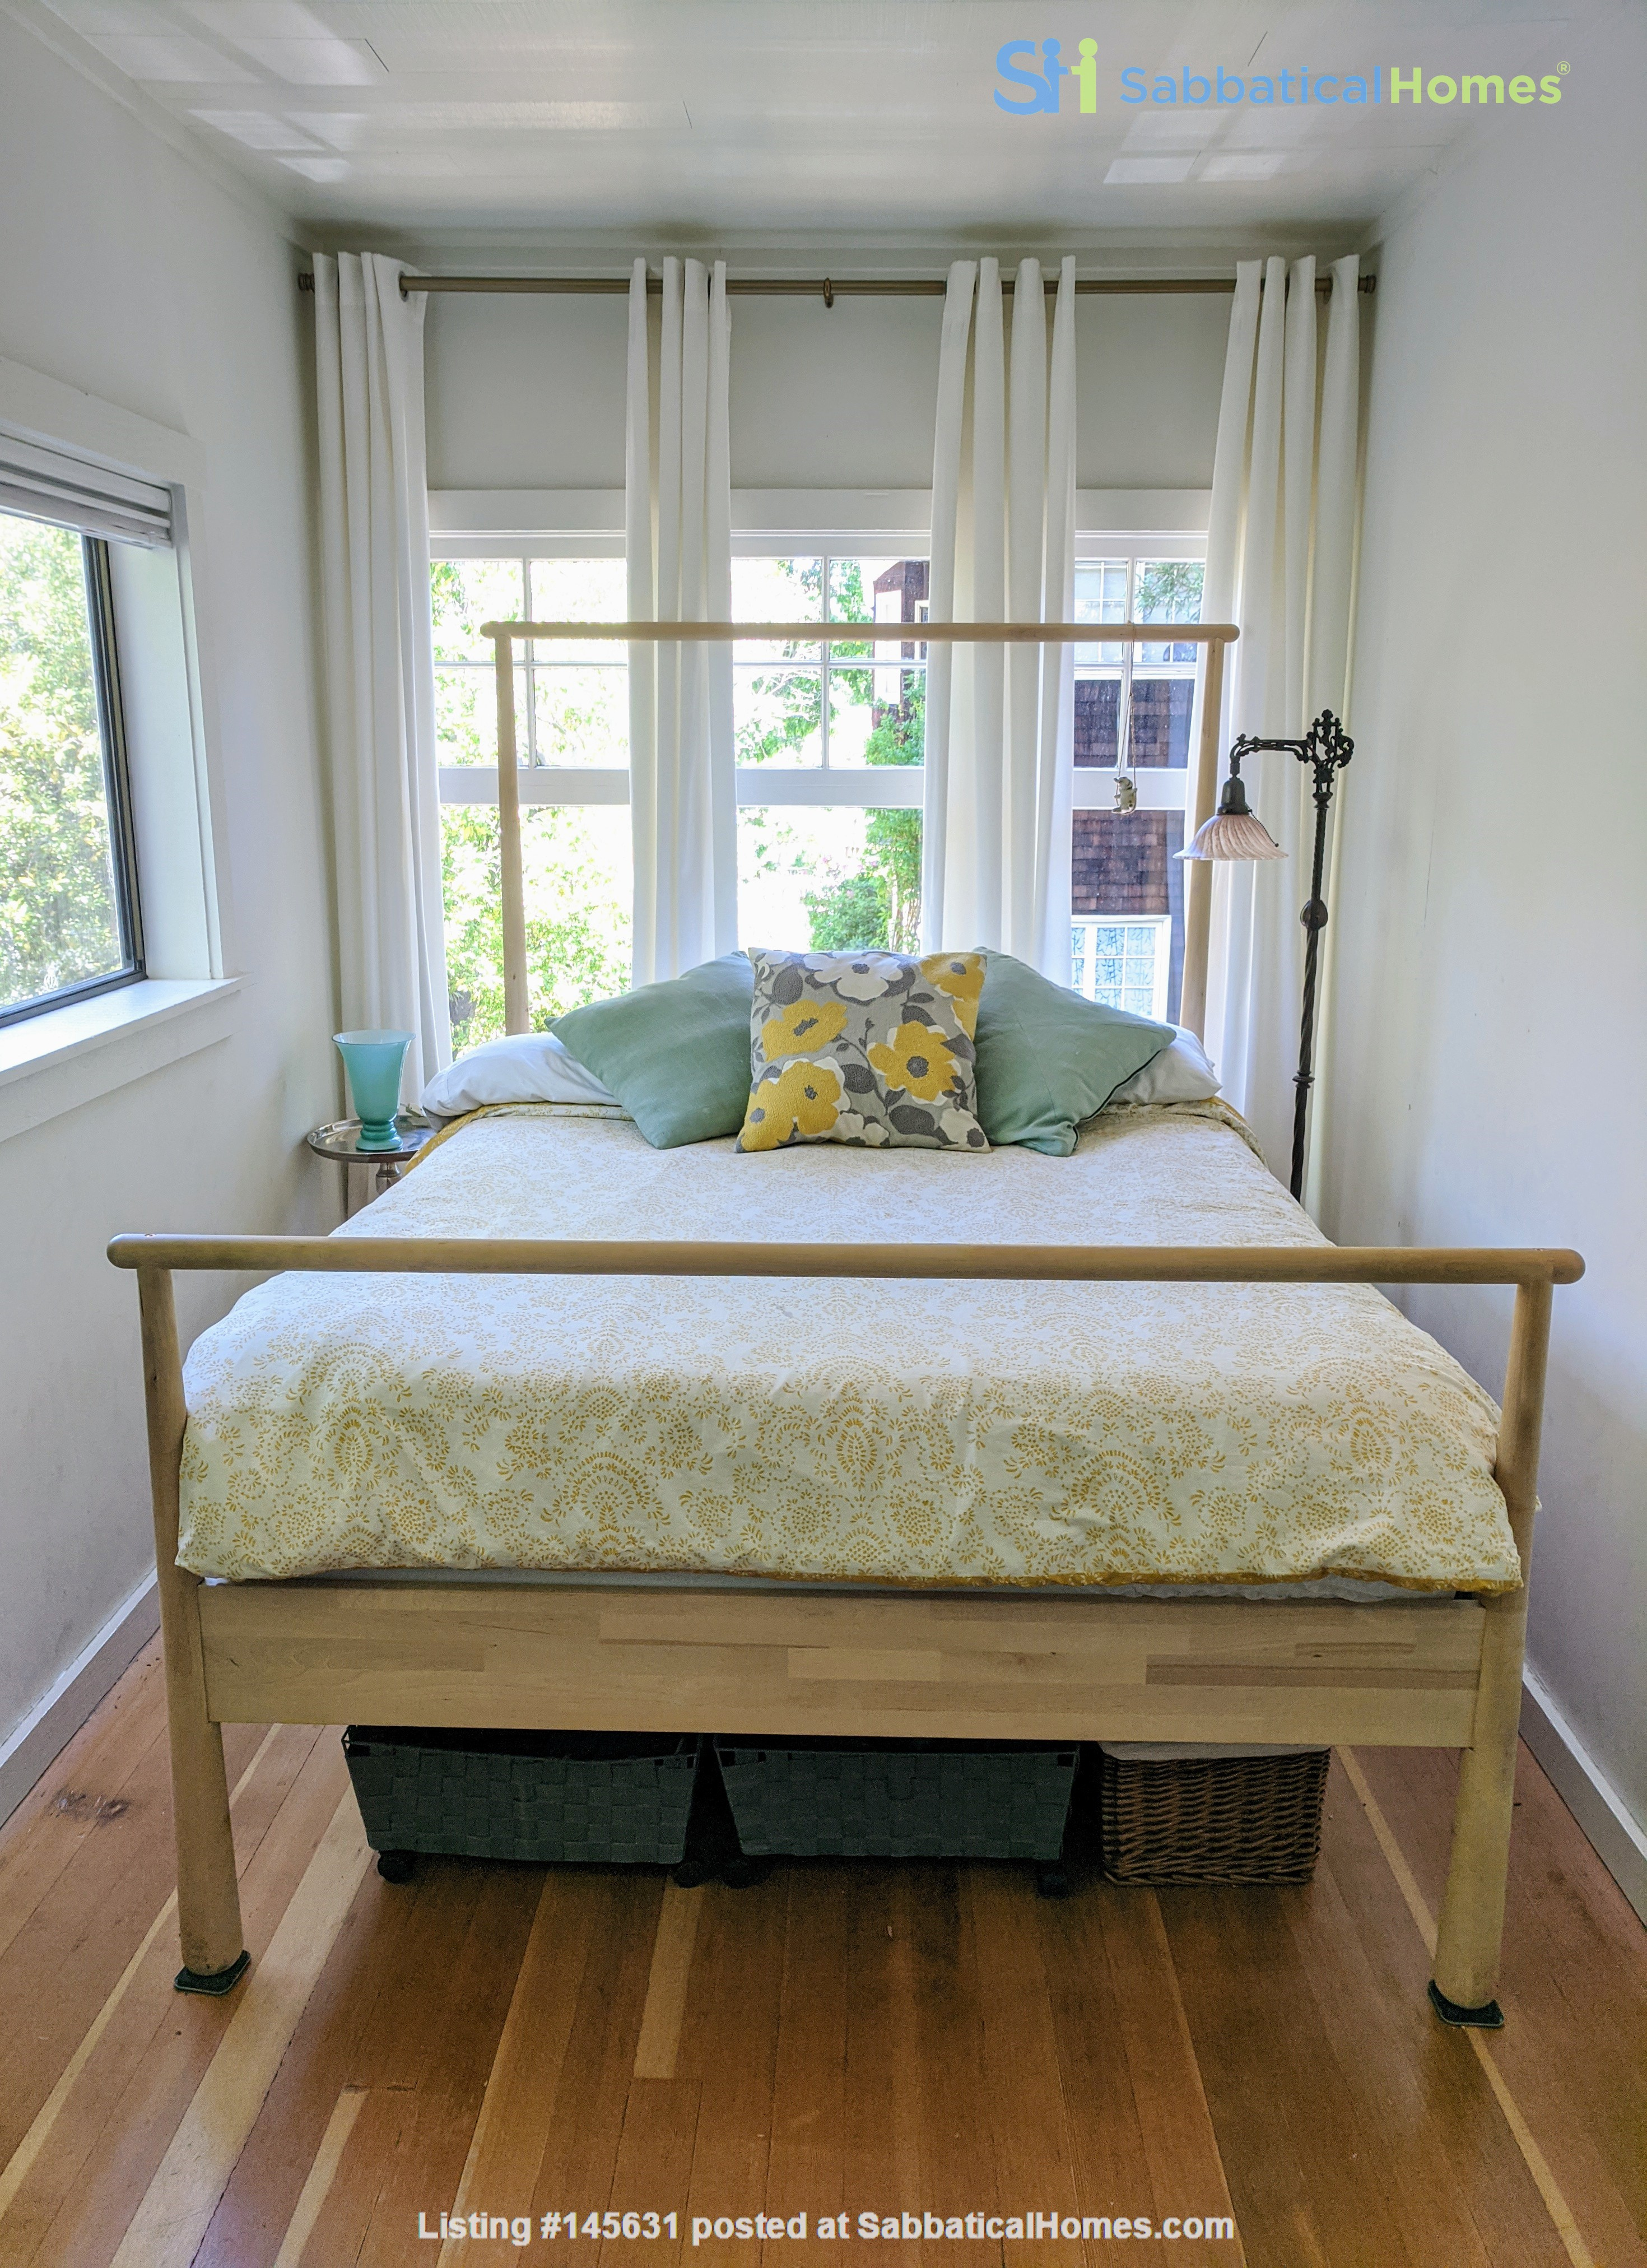 CHARMING PRIVATE COTTAGE 1 BR/1 BA + Office/studio space (720sft) Home Rental in San Rafael, California, United States 6